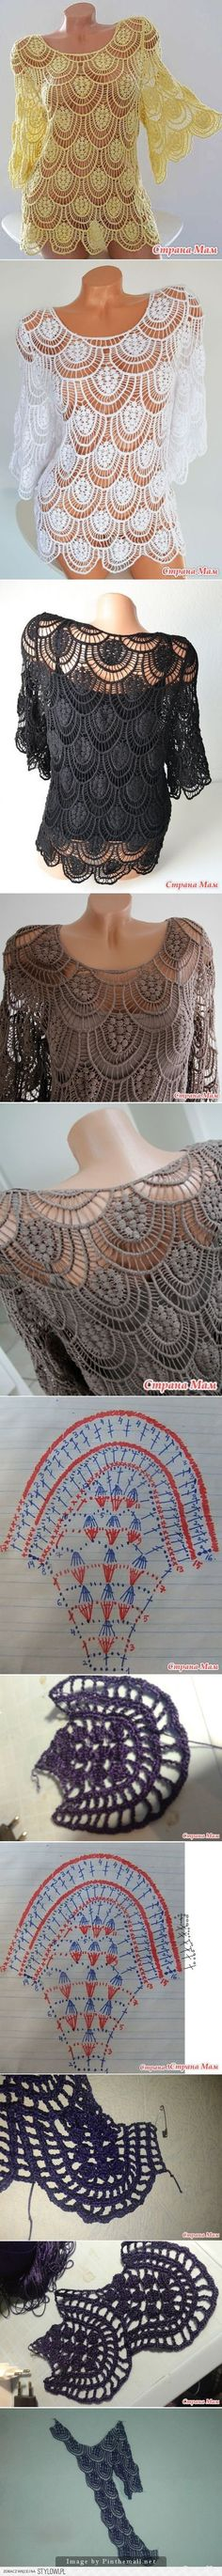 37 super ideas for knitting patterns free summer woman crochet diagram Crochet Bolero, Poncho Au Crochet, Pull Crochet, Crochet Diy, Crochet Motifs, Crochet Shirt, Crochet Diagram, Crochet Woman, Irish Crochet